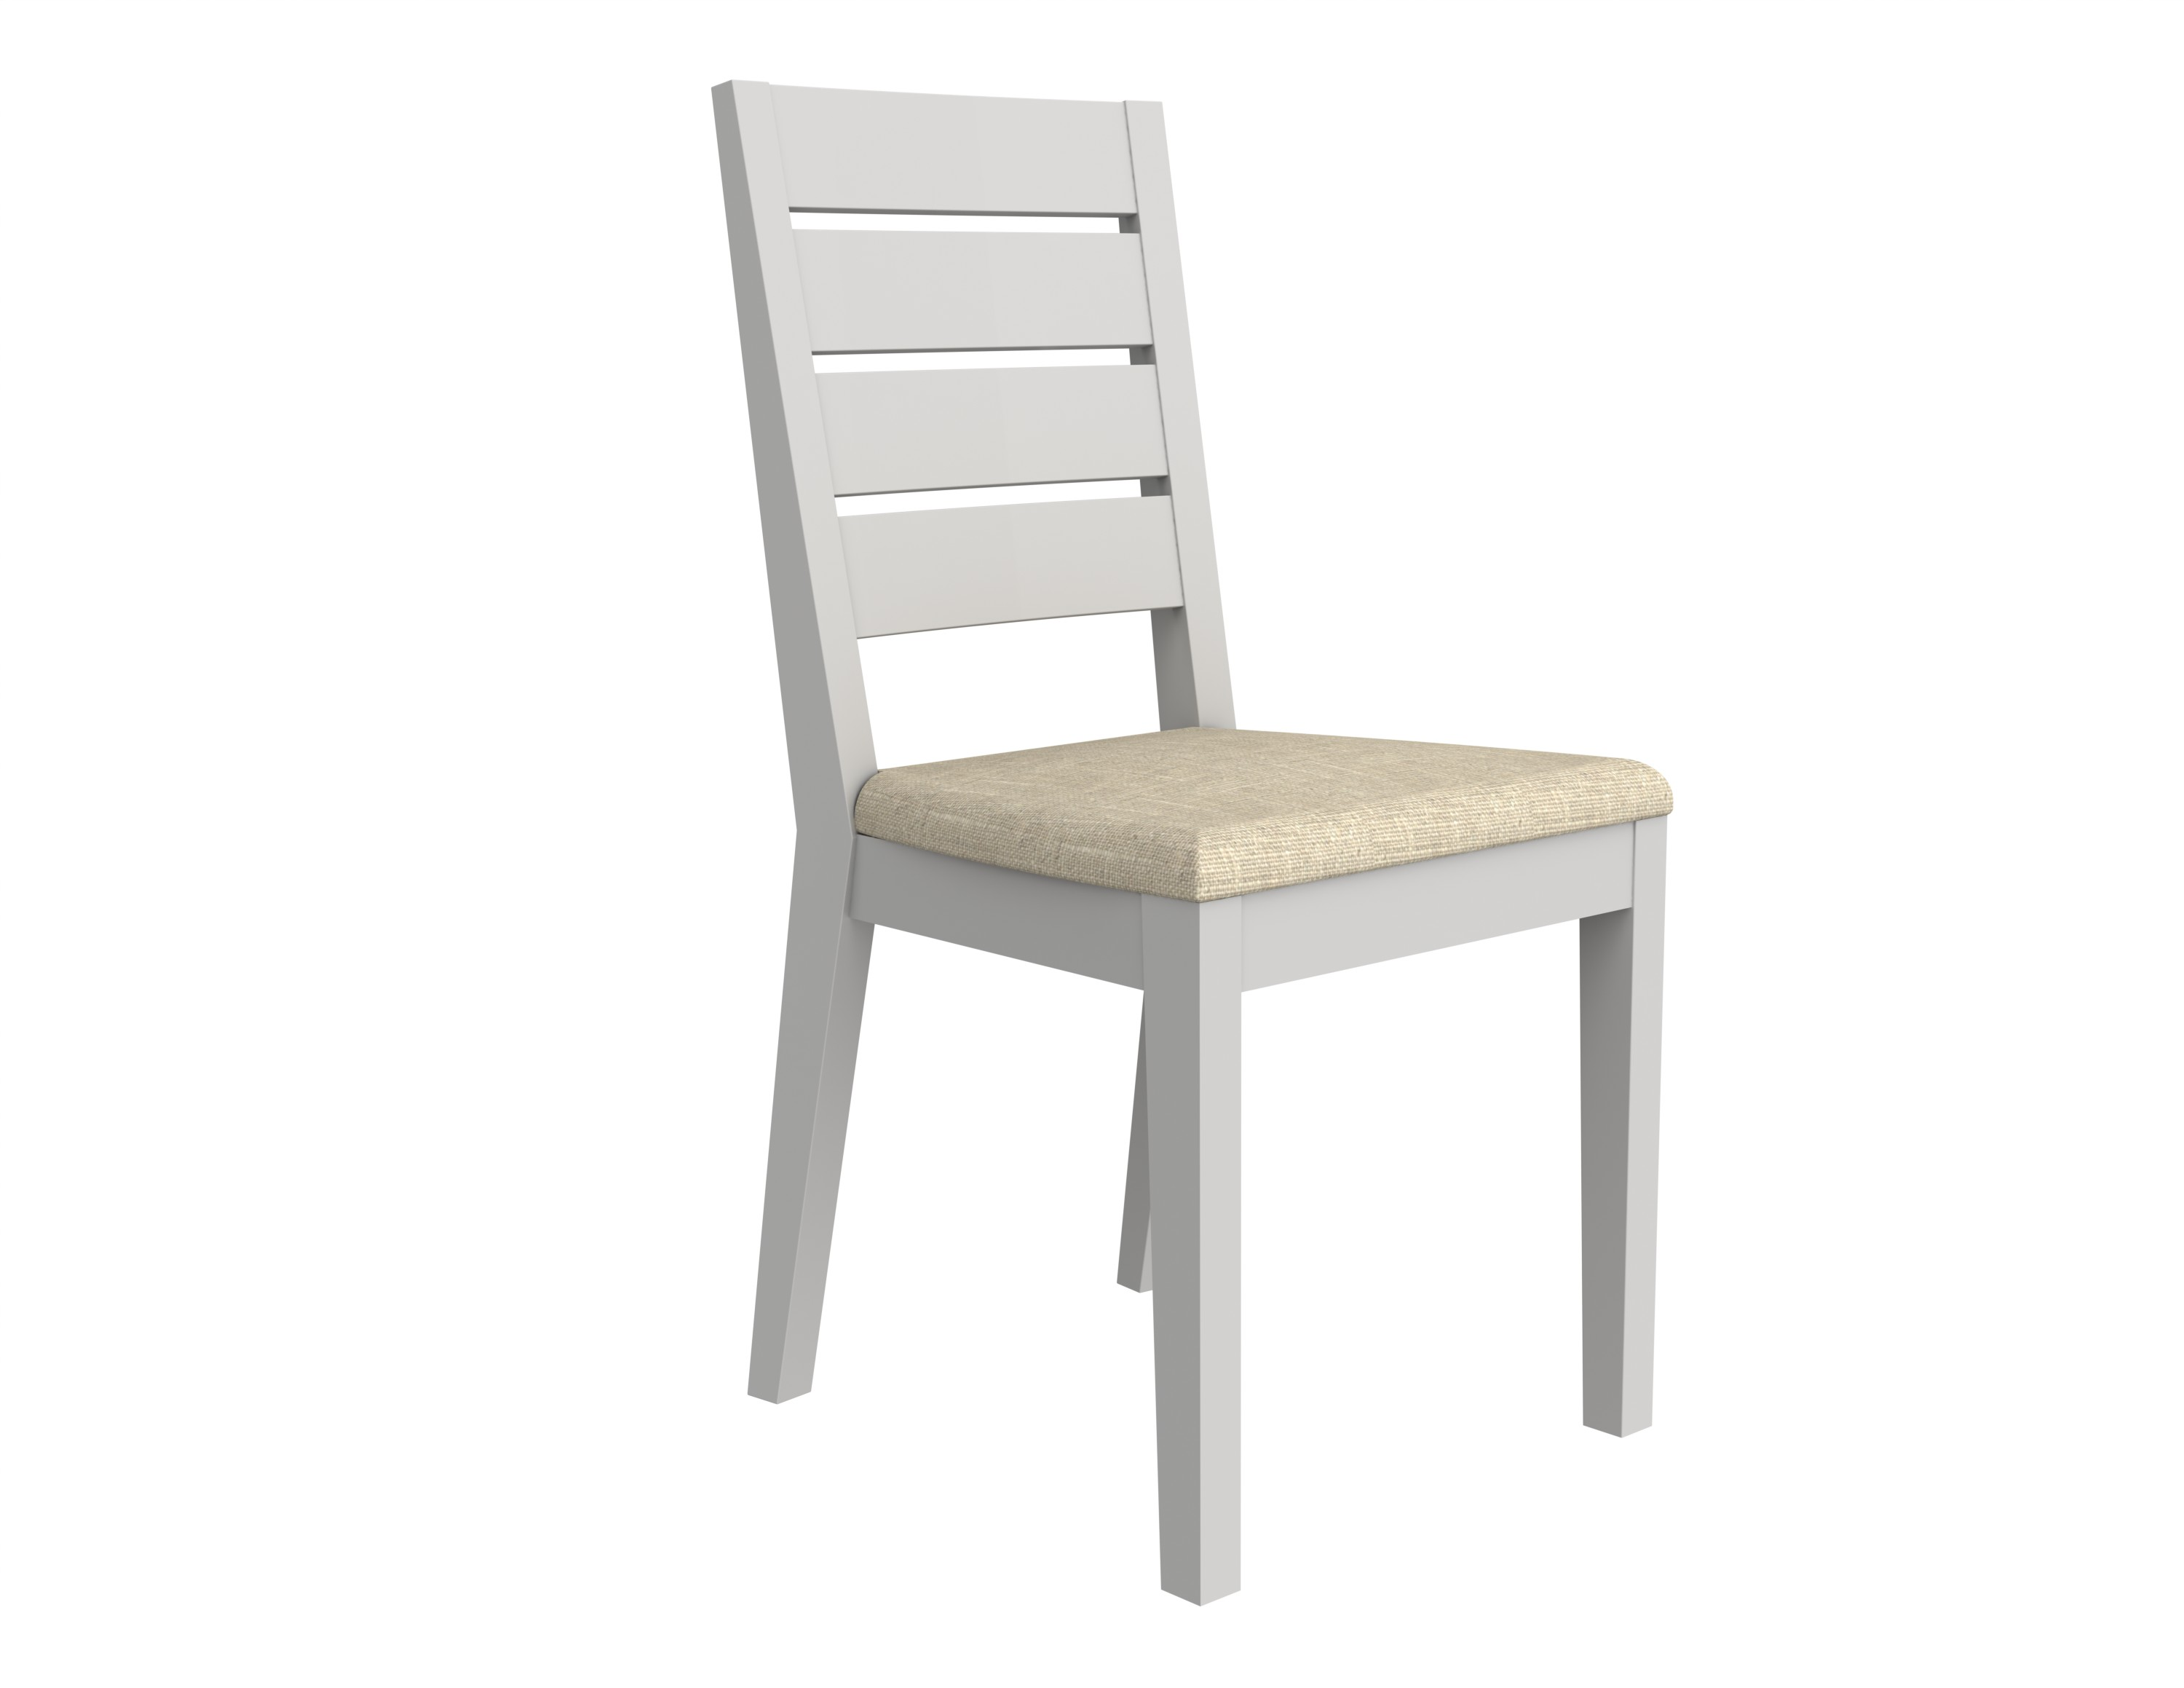 BRITTANY PAINTED Dining Chair